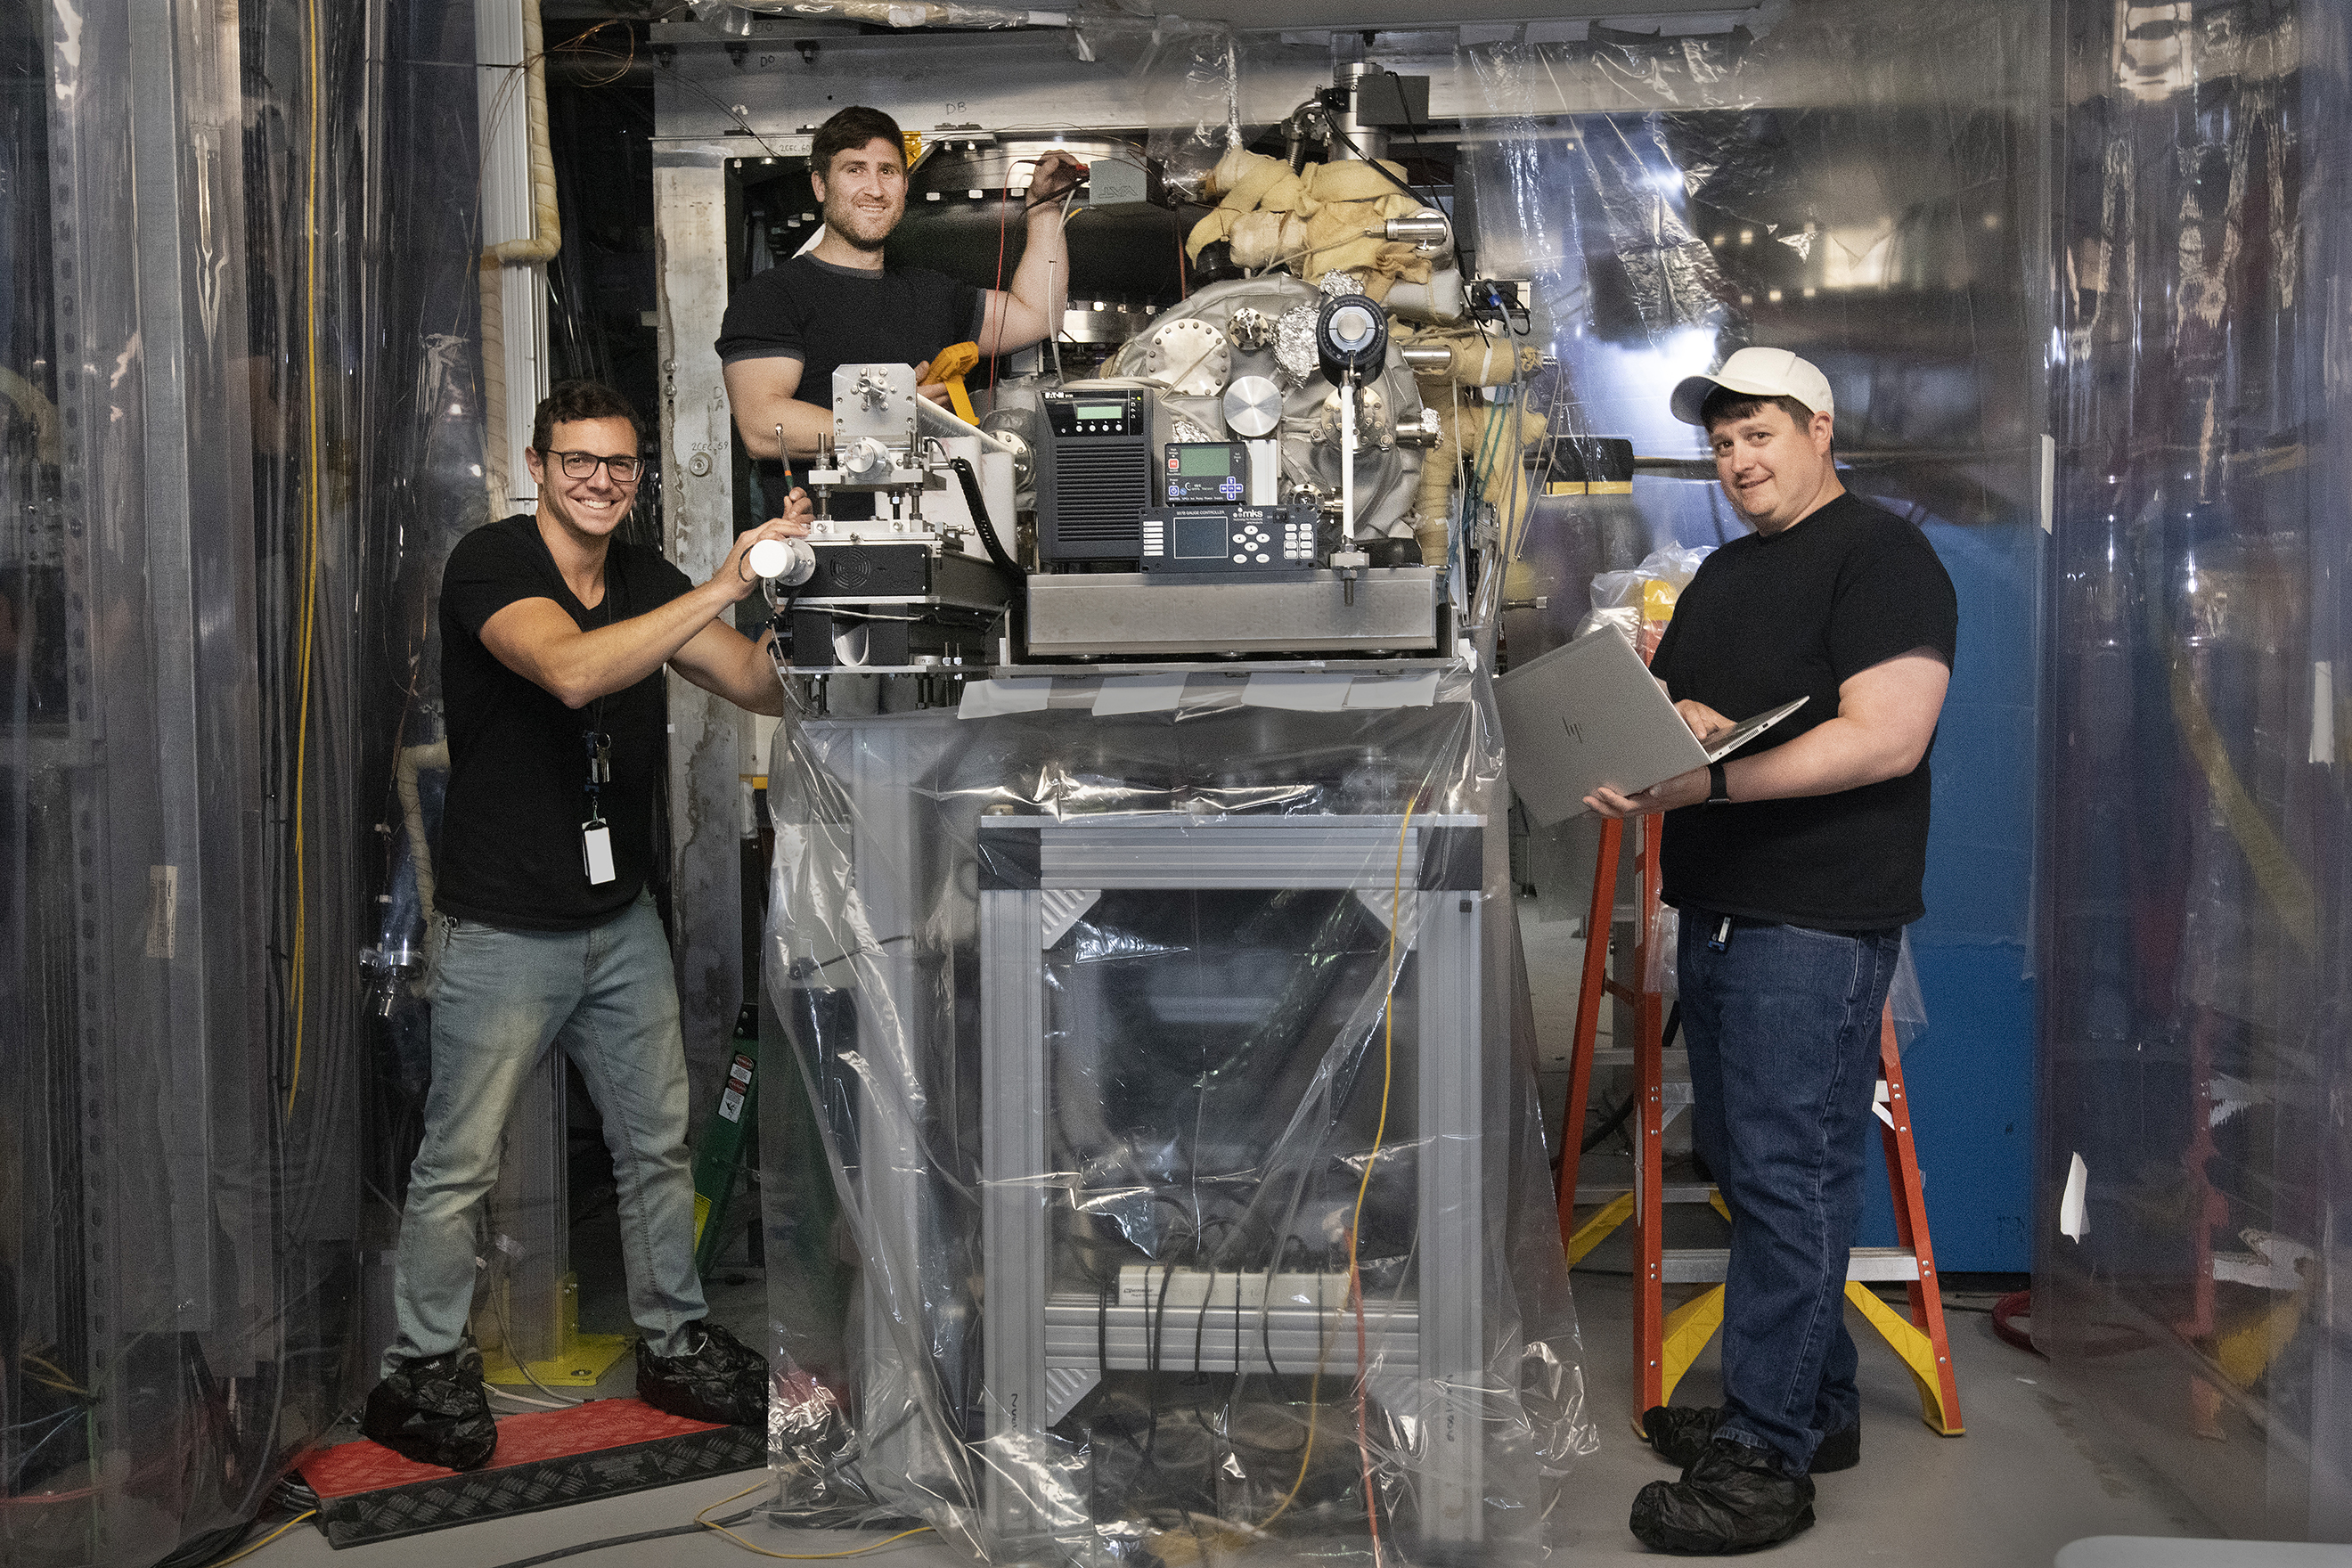 Members of Collider-Accelerator Department vacuum group next to the cathode insertion device (l to r): Mike Nicoletta, Kirk Sinclair, and Ken Decker.